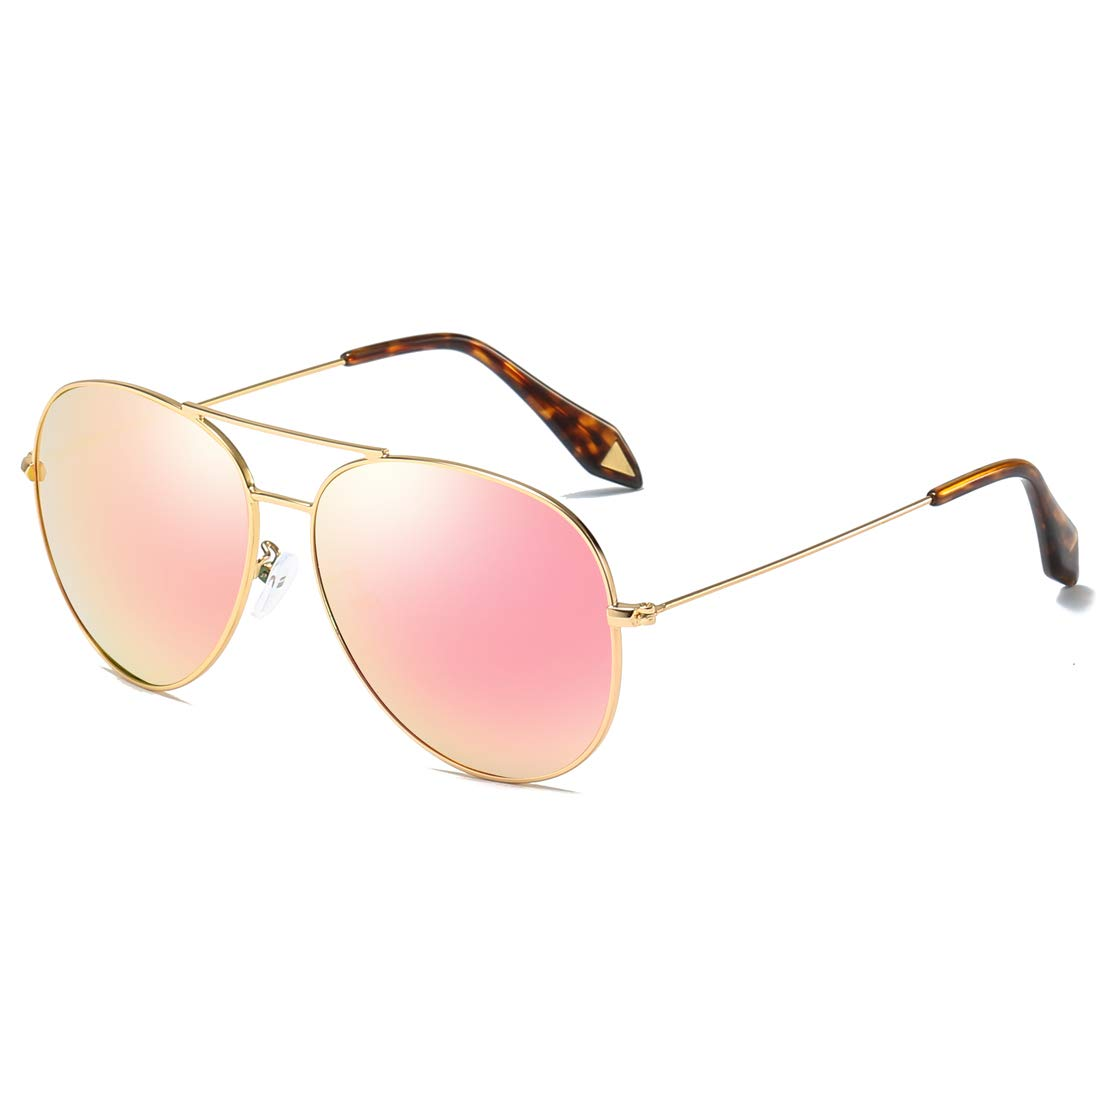 119948ad34a8 Amazon.com: COASION Oversized Polarized Aviator Sunglasses for Women  Mirrored Lens Lightweight Metal Frame - 100% UV Protection (Gold Frame/Pink  Mirror ...